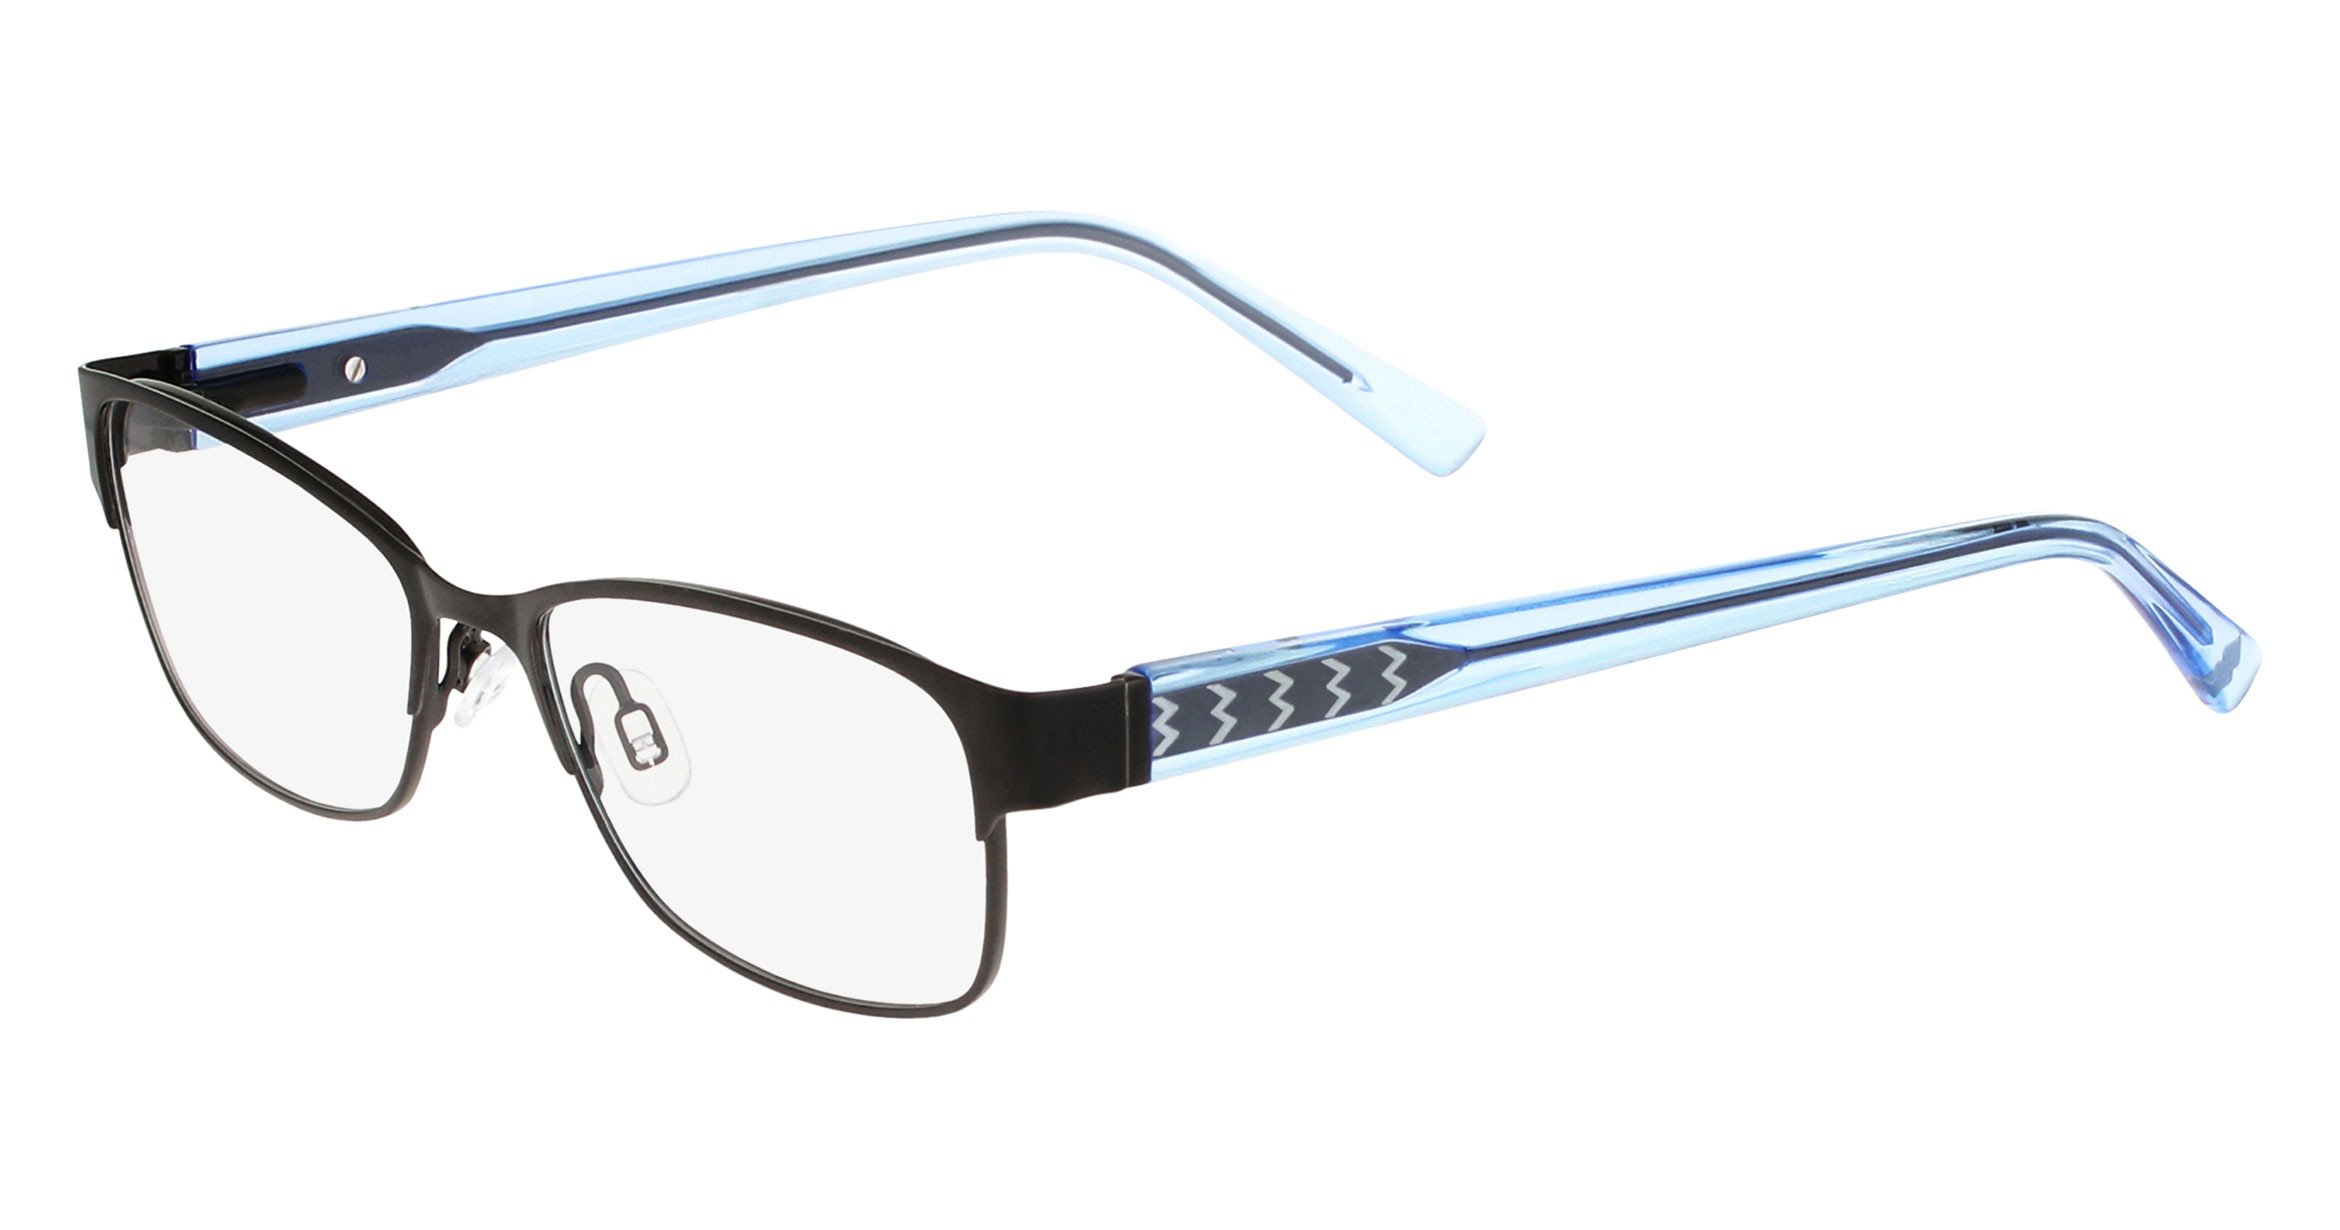 96fb1d8a0ac Kilter K5003 Eyeglasses - Kilter Authorized Retailer - coolframes.co.uk